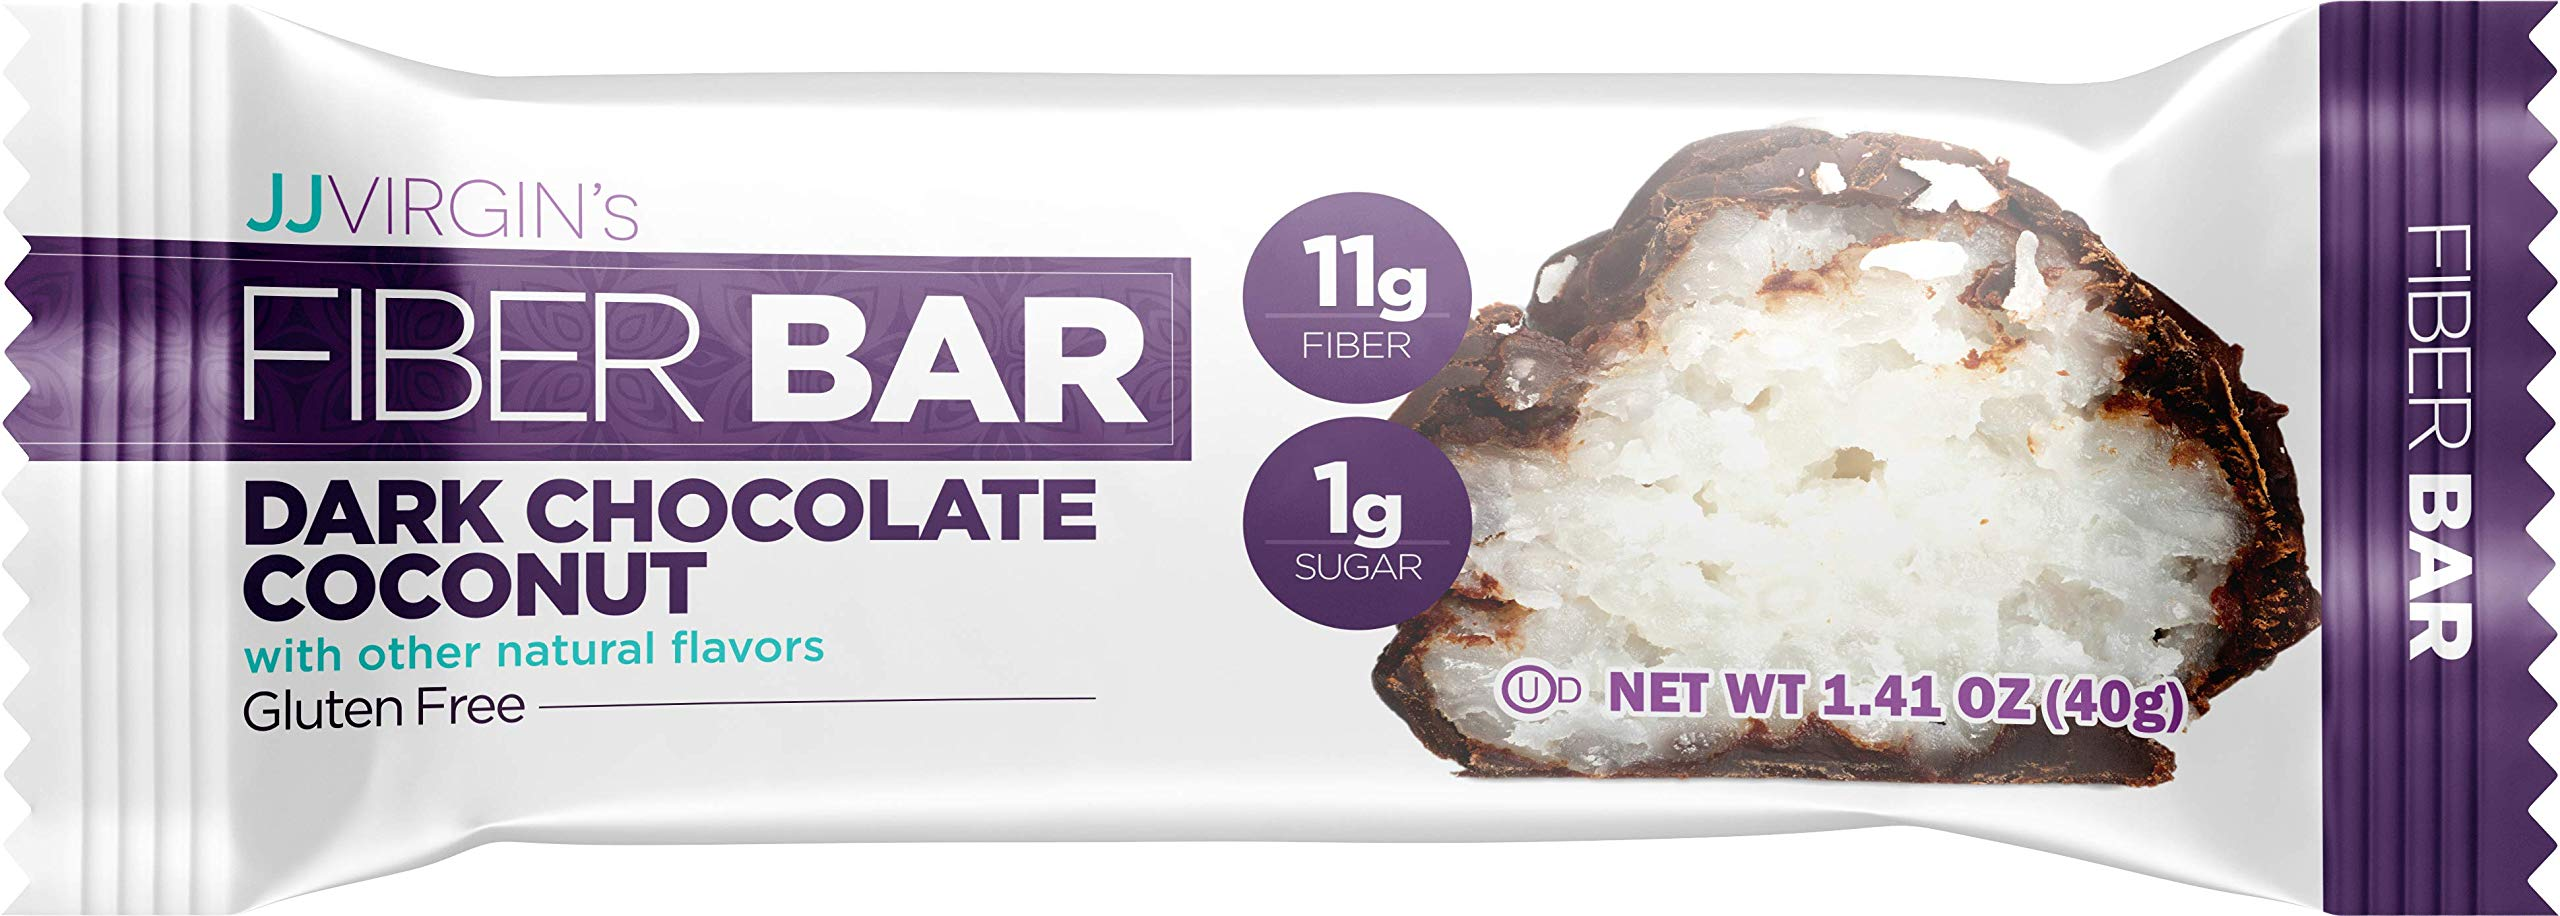 JJ Virgin Dark Chocolate Coconut Fiber Bars - 3 Net Carbs, 11 Grams of Fiber + MCT Oil (Box of 12) by JJ VIRGIN